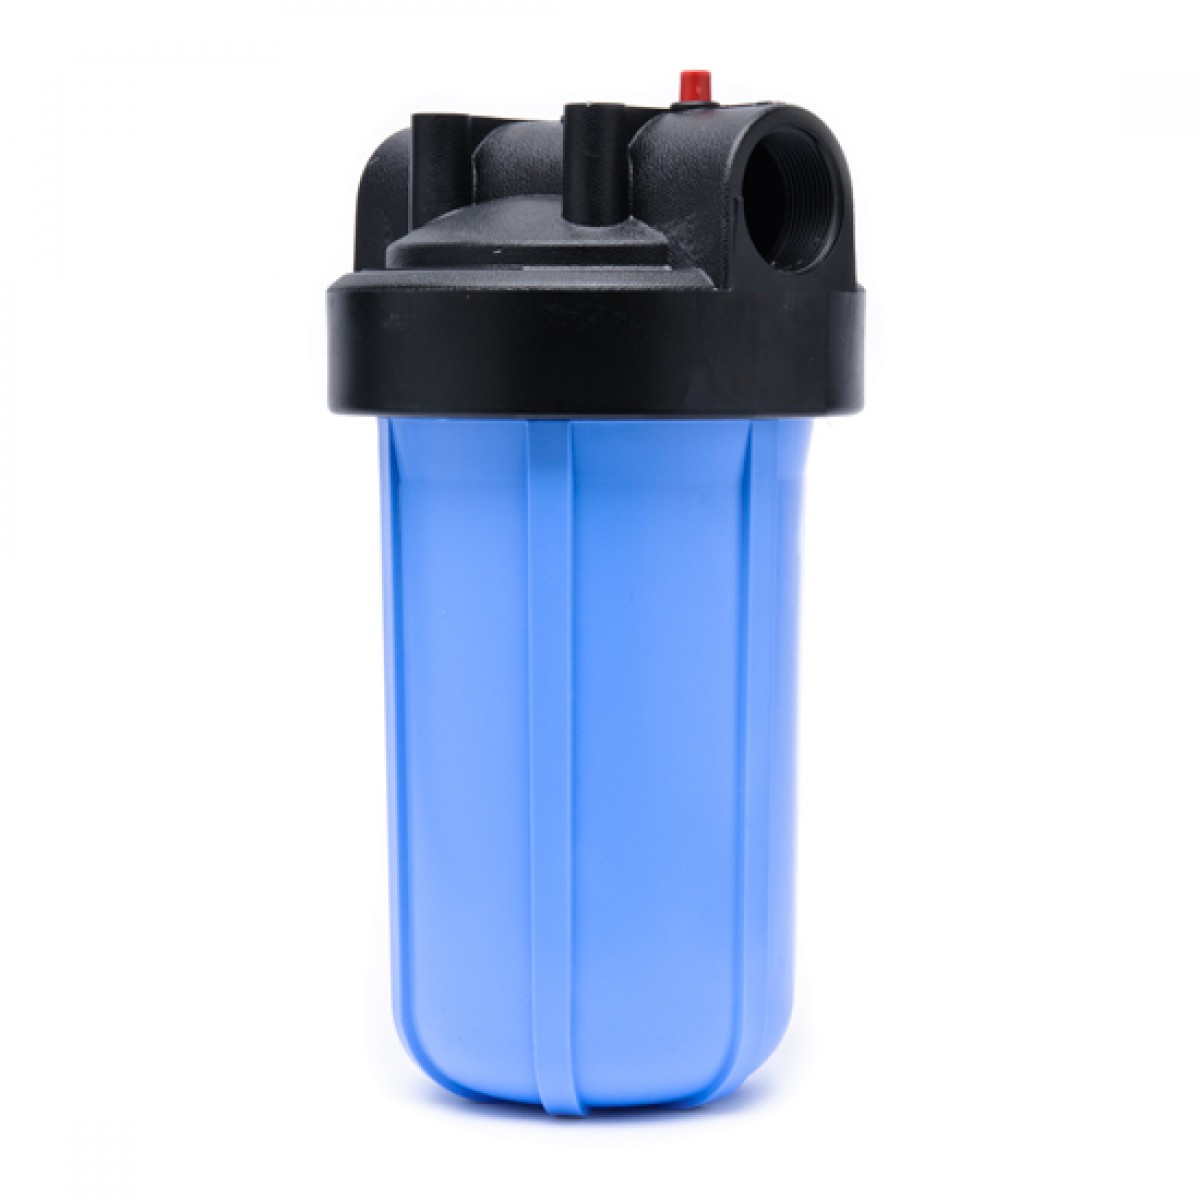 House Water Filter Hd 950 15 In Whole House Water Filter System